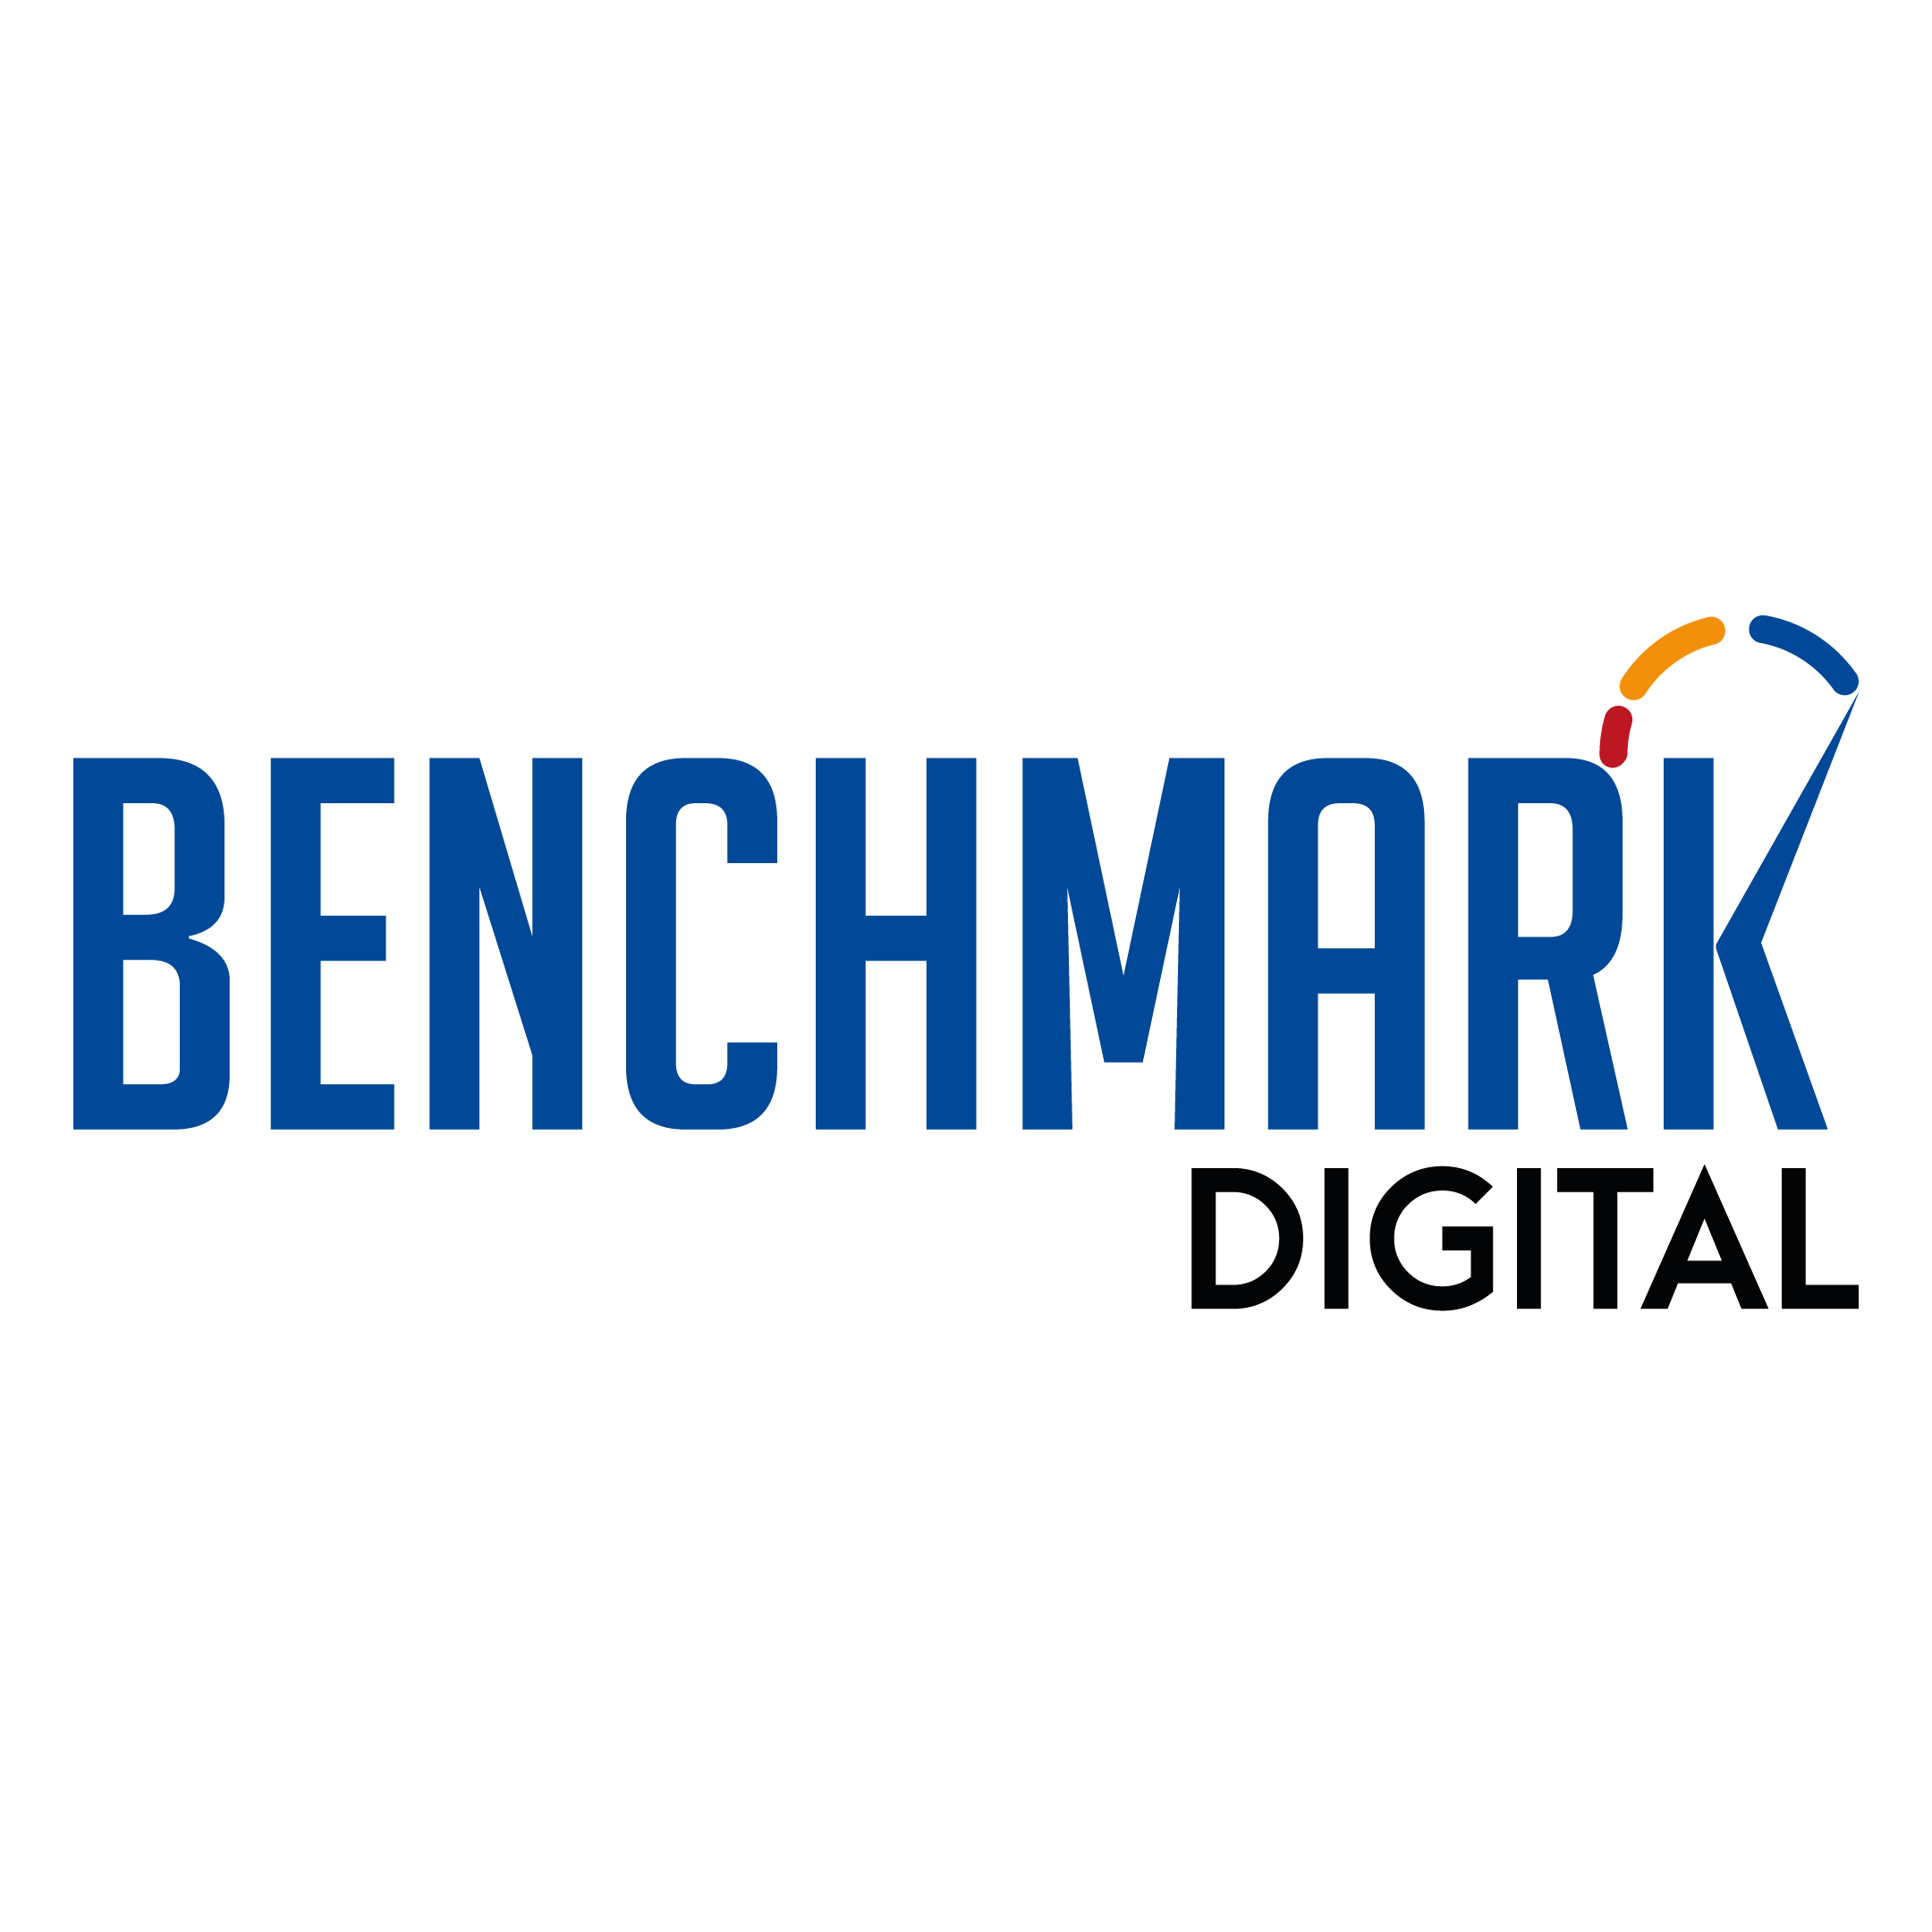 Benchmark Digital Logo